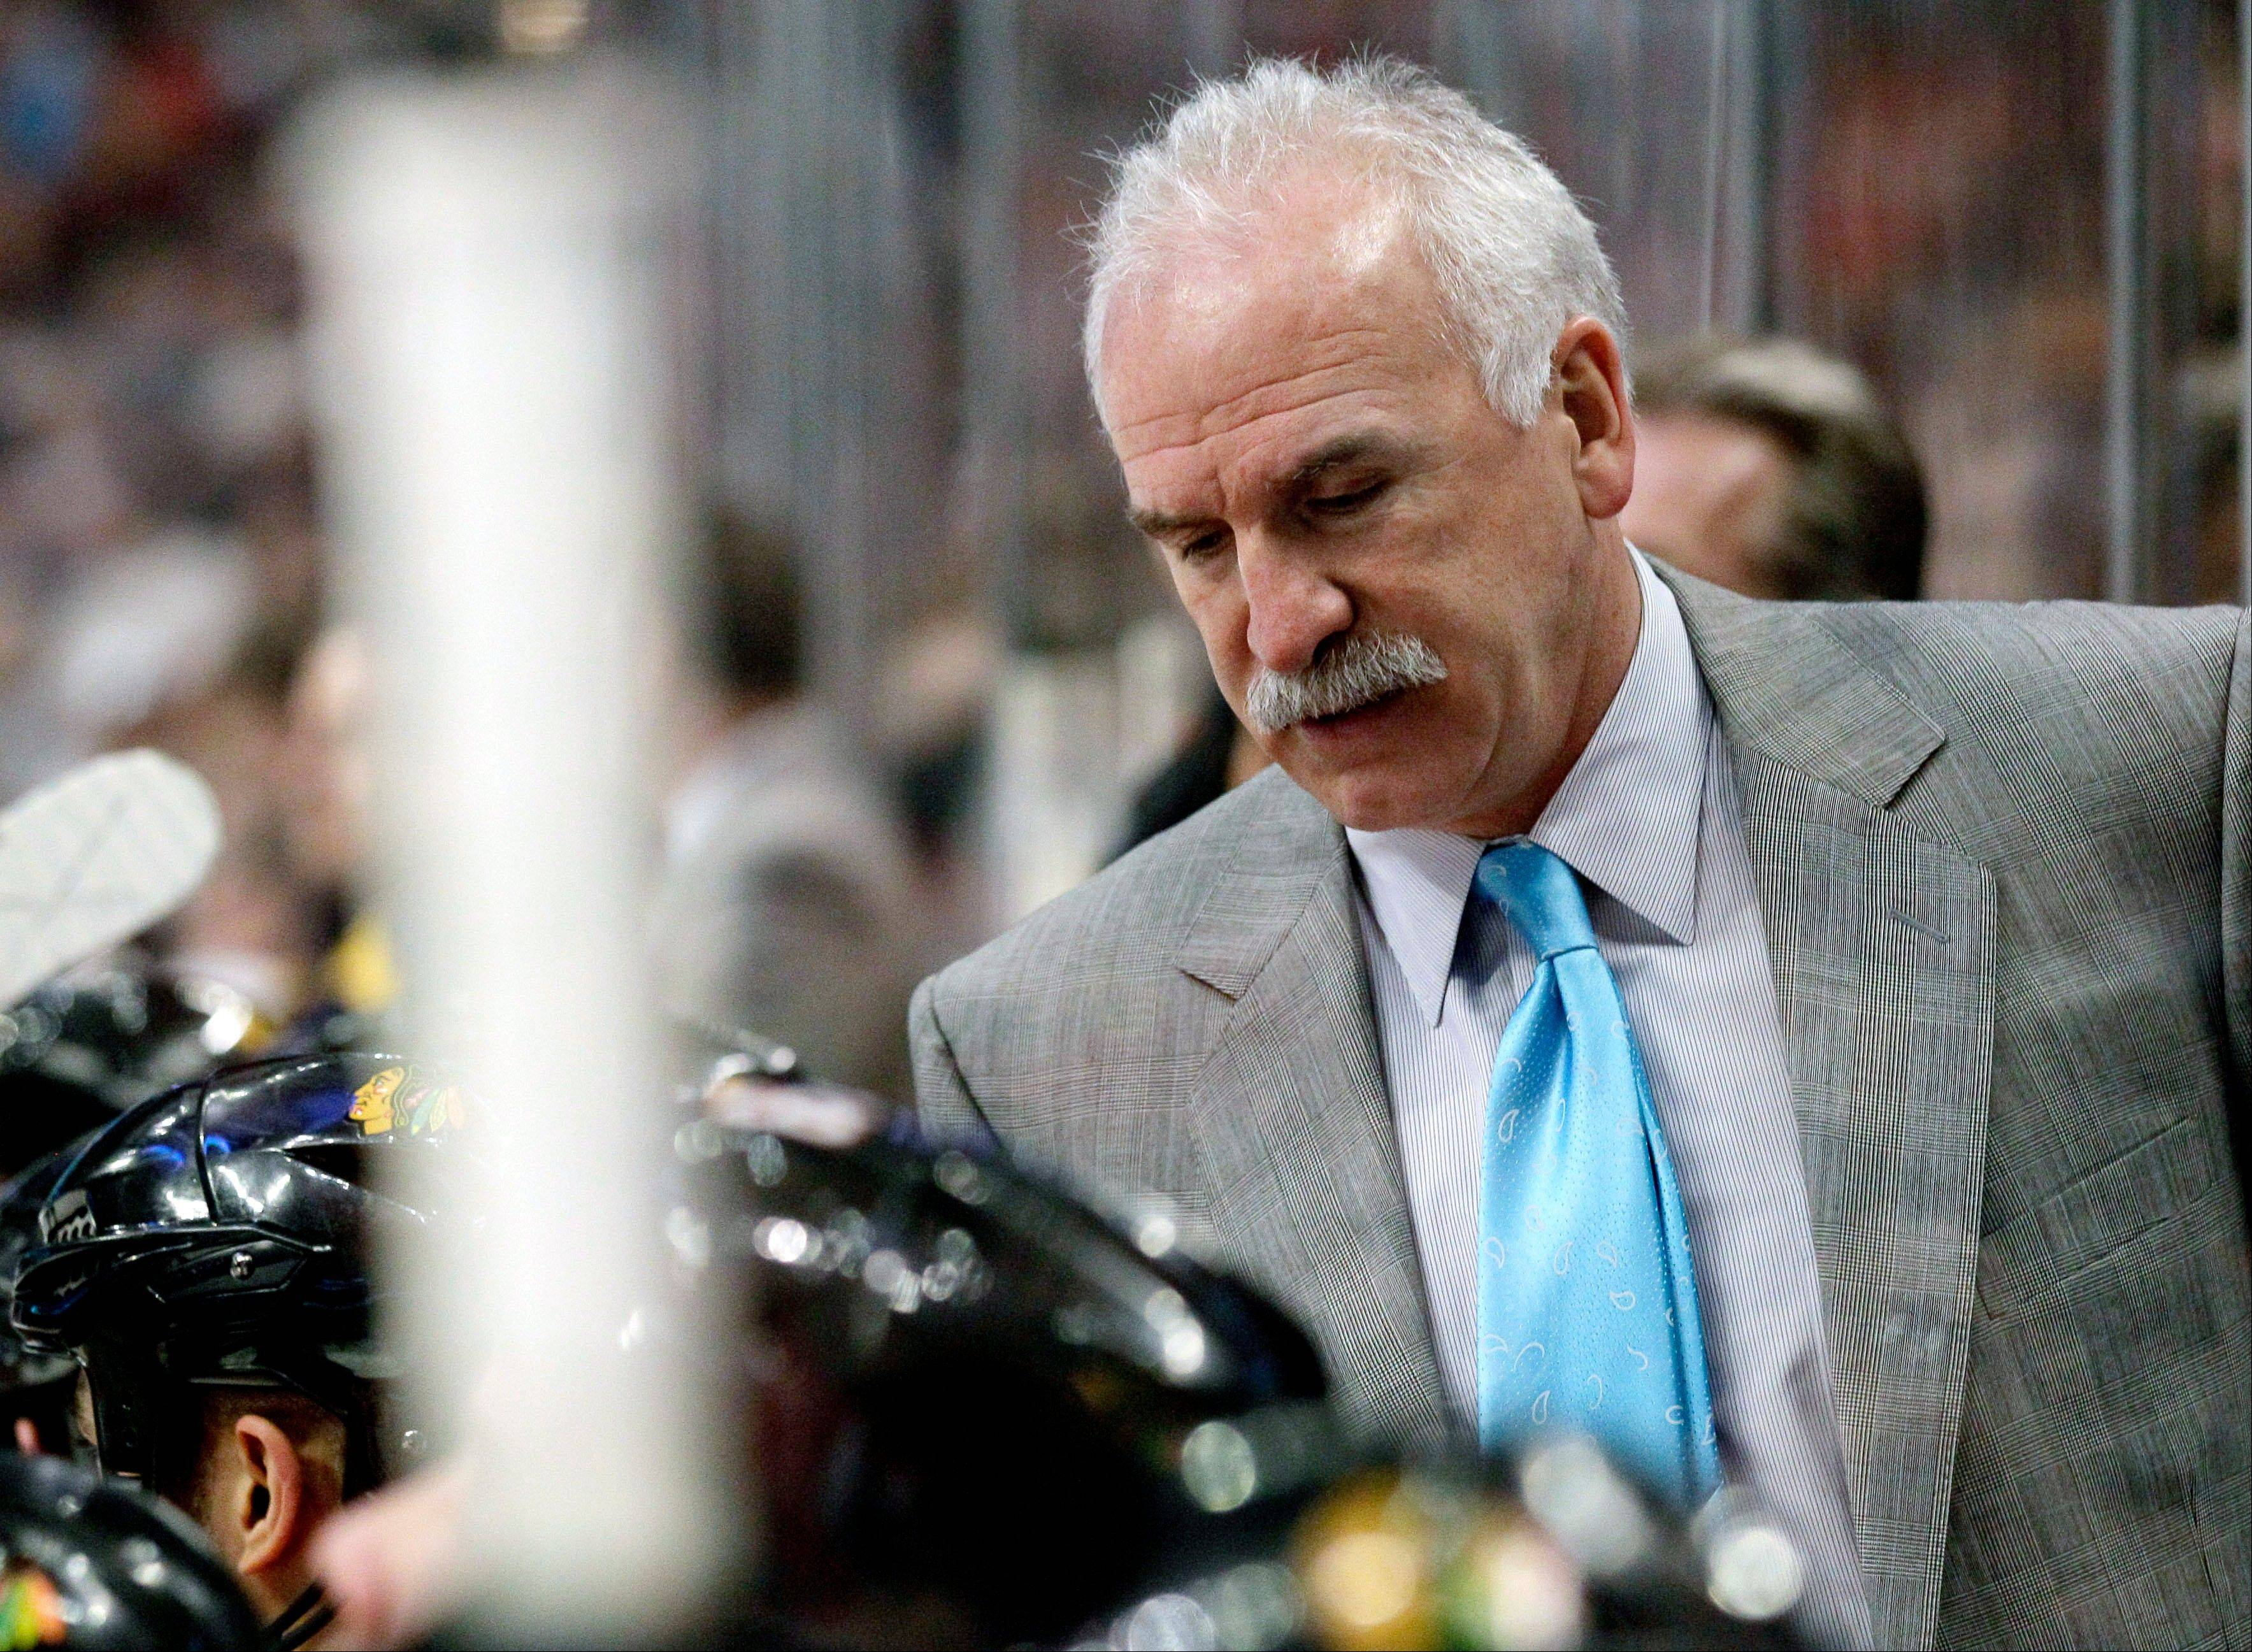 Blackhawks head coach Joel Quenneville wasn't happy with his team's effort Sunday against the Nashville Predators. Quenneville called for a unexpected practice Monday, but later said it's important to put the loss behind them.